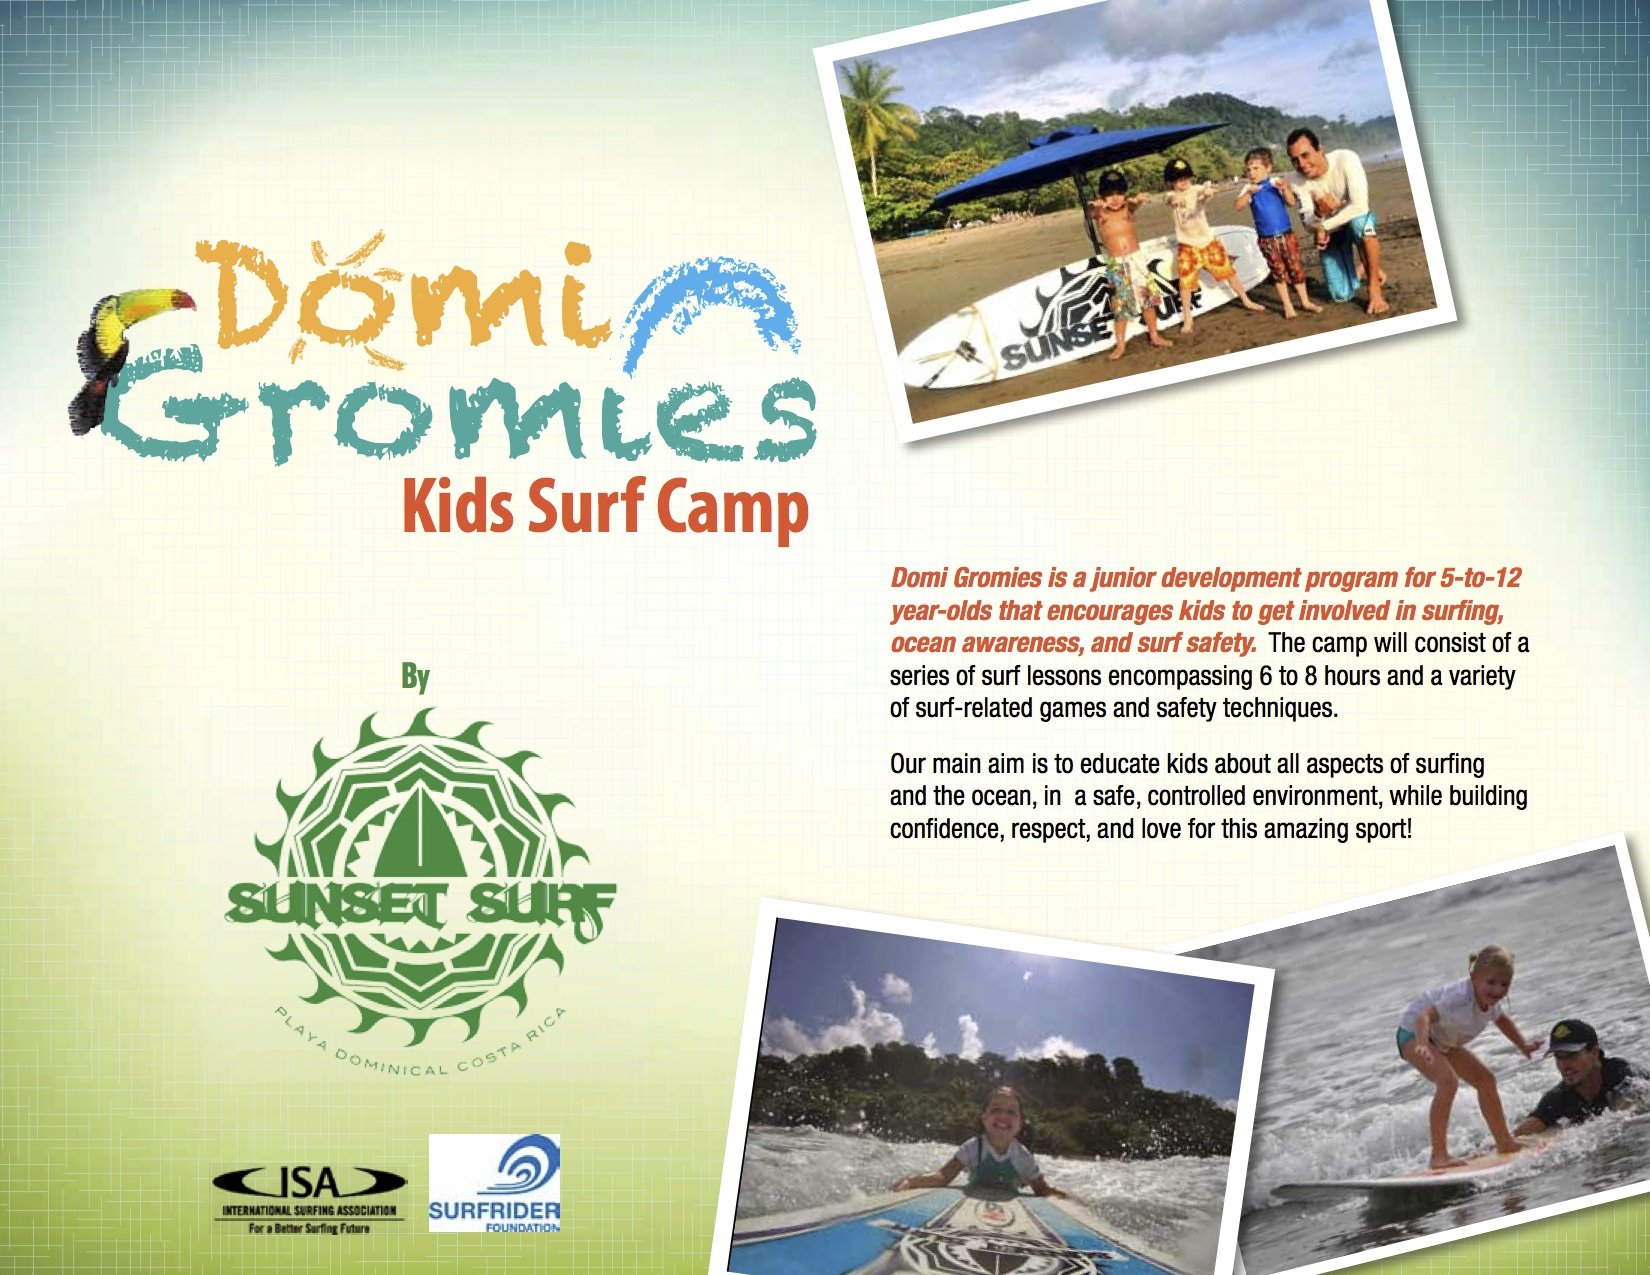 Costa Rica Kids Surf Camp